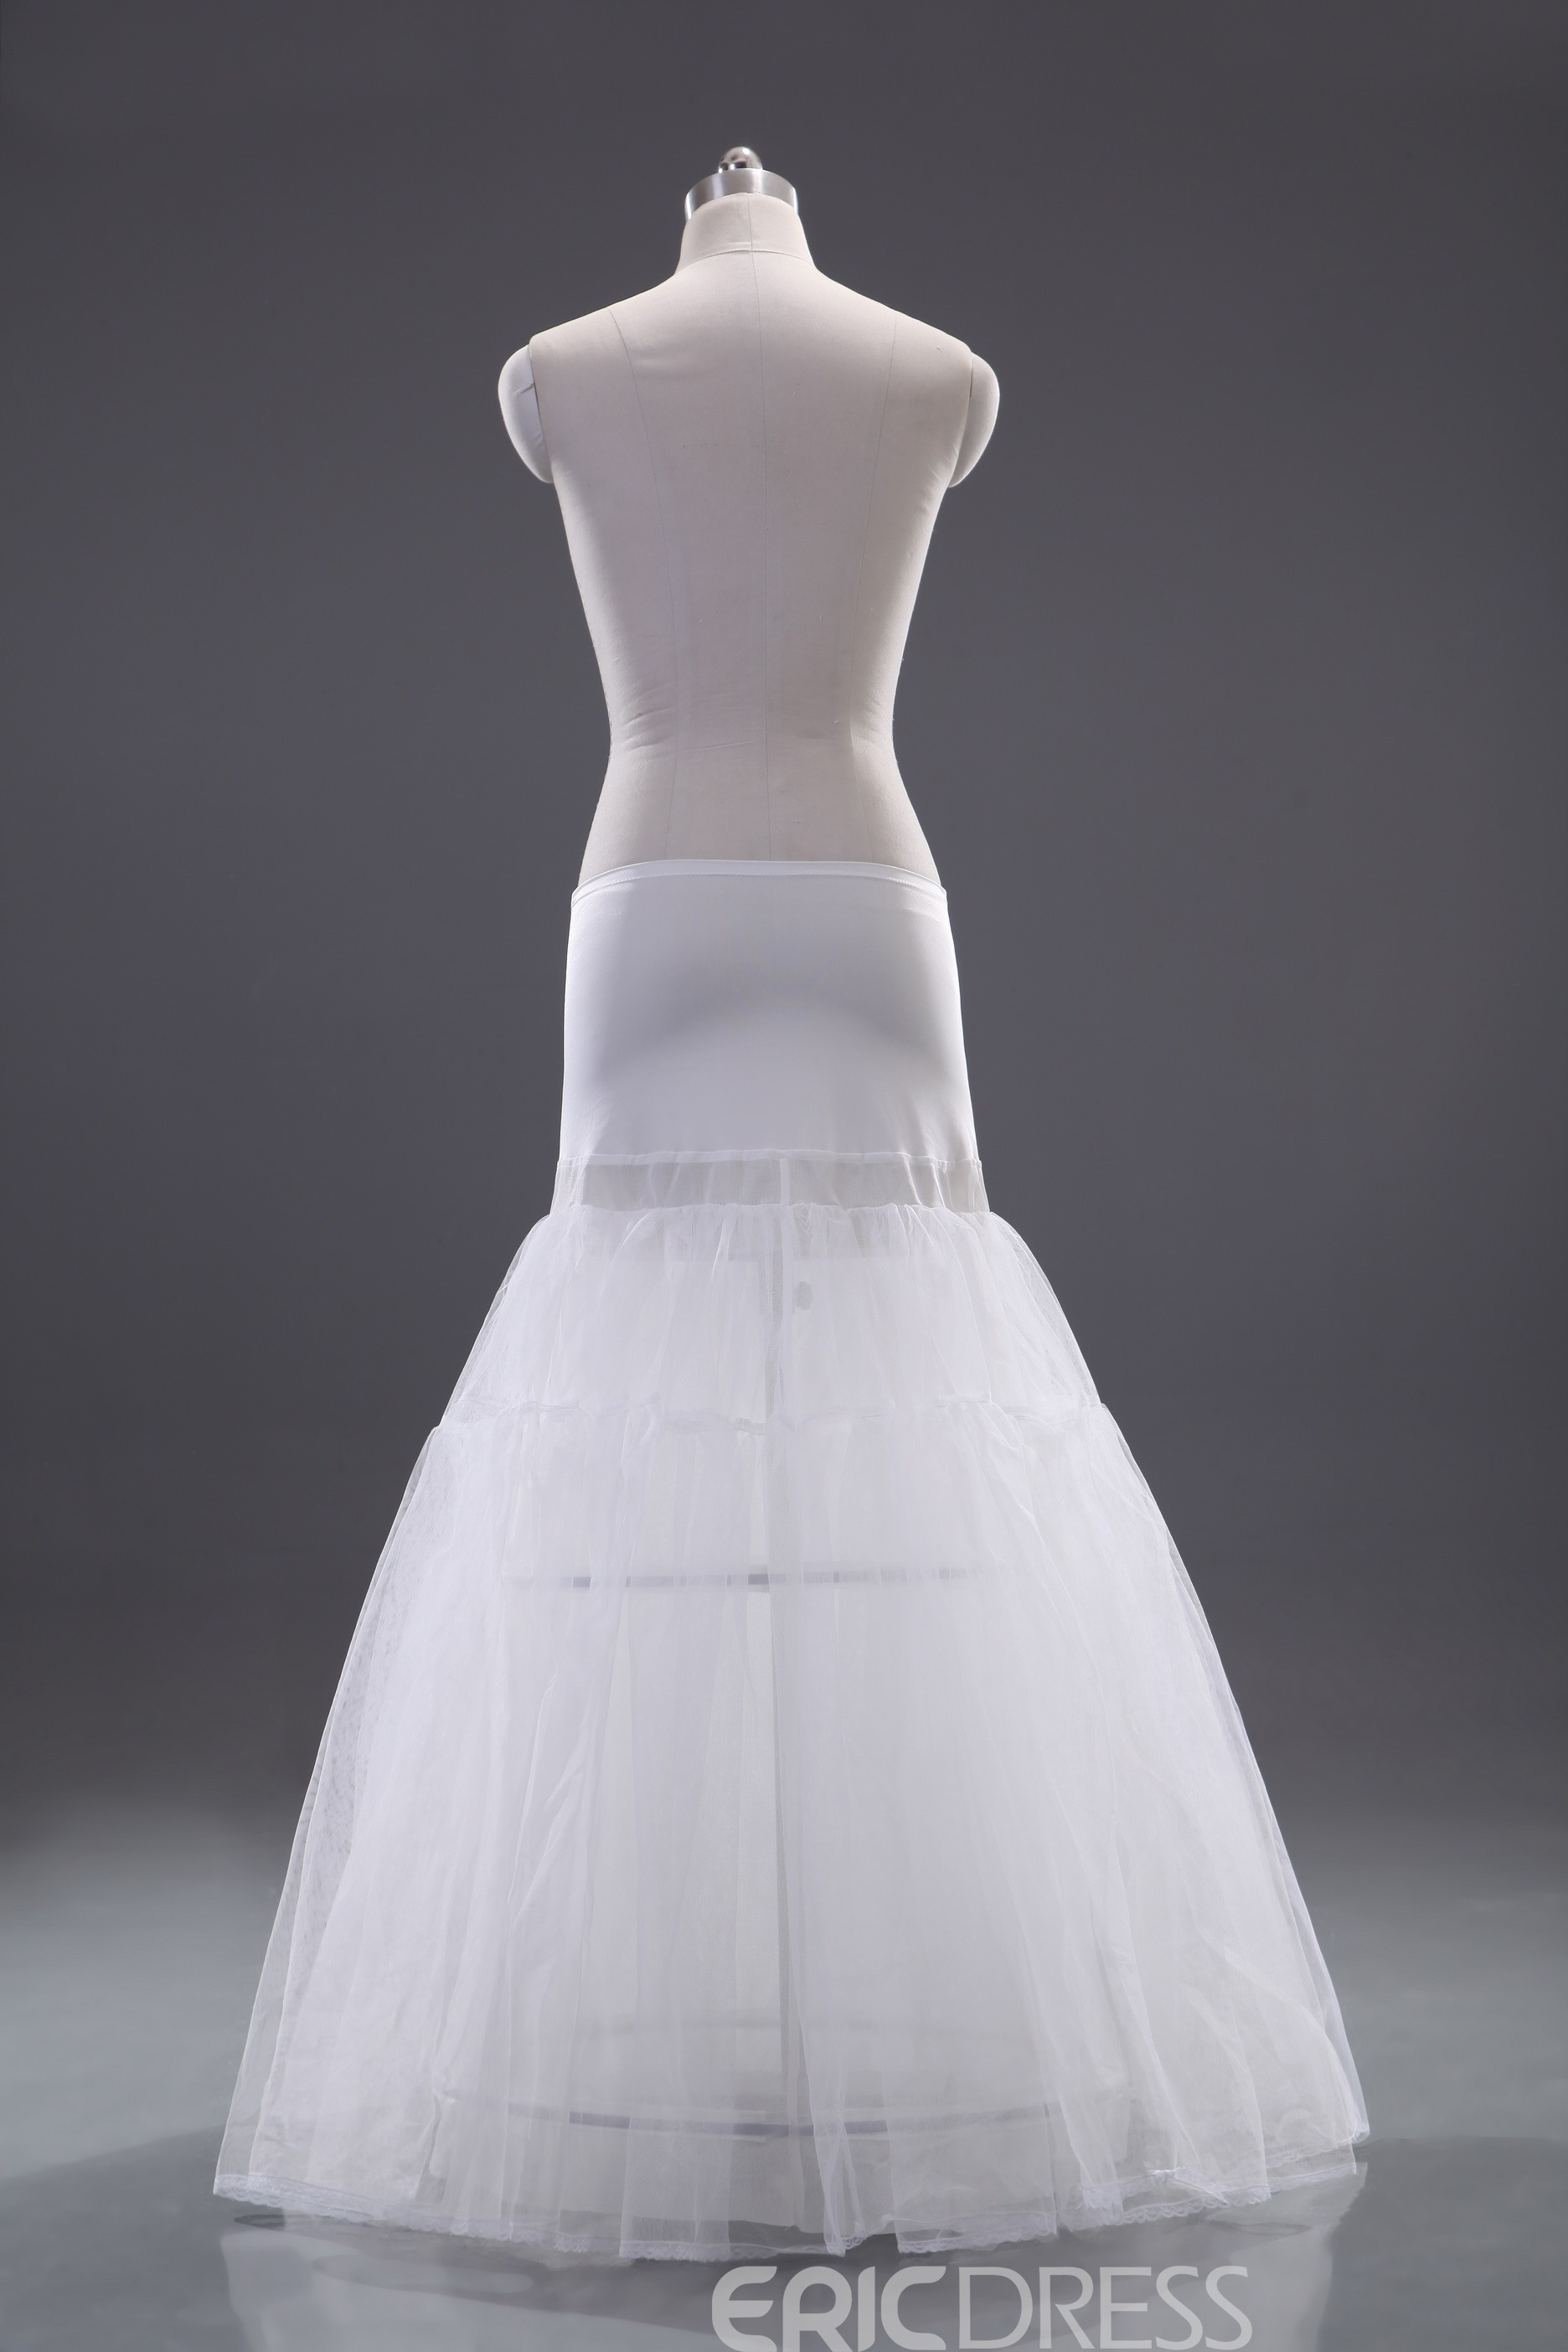 Noble Two Layers Dropped Waistline Wedding Petticoat